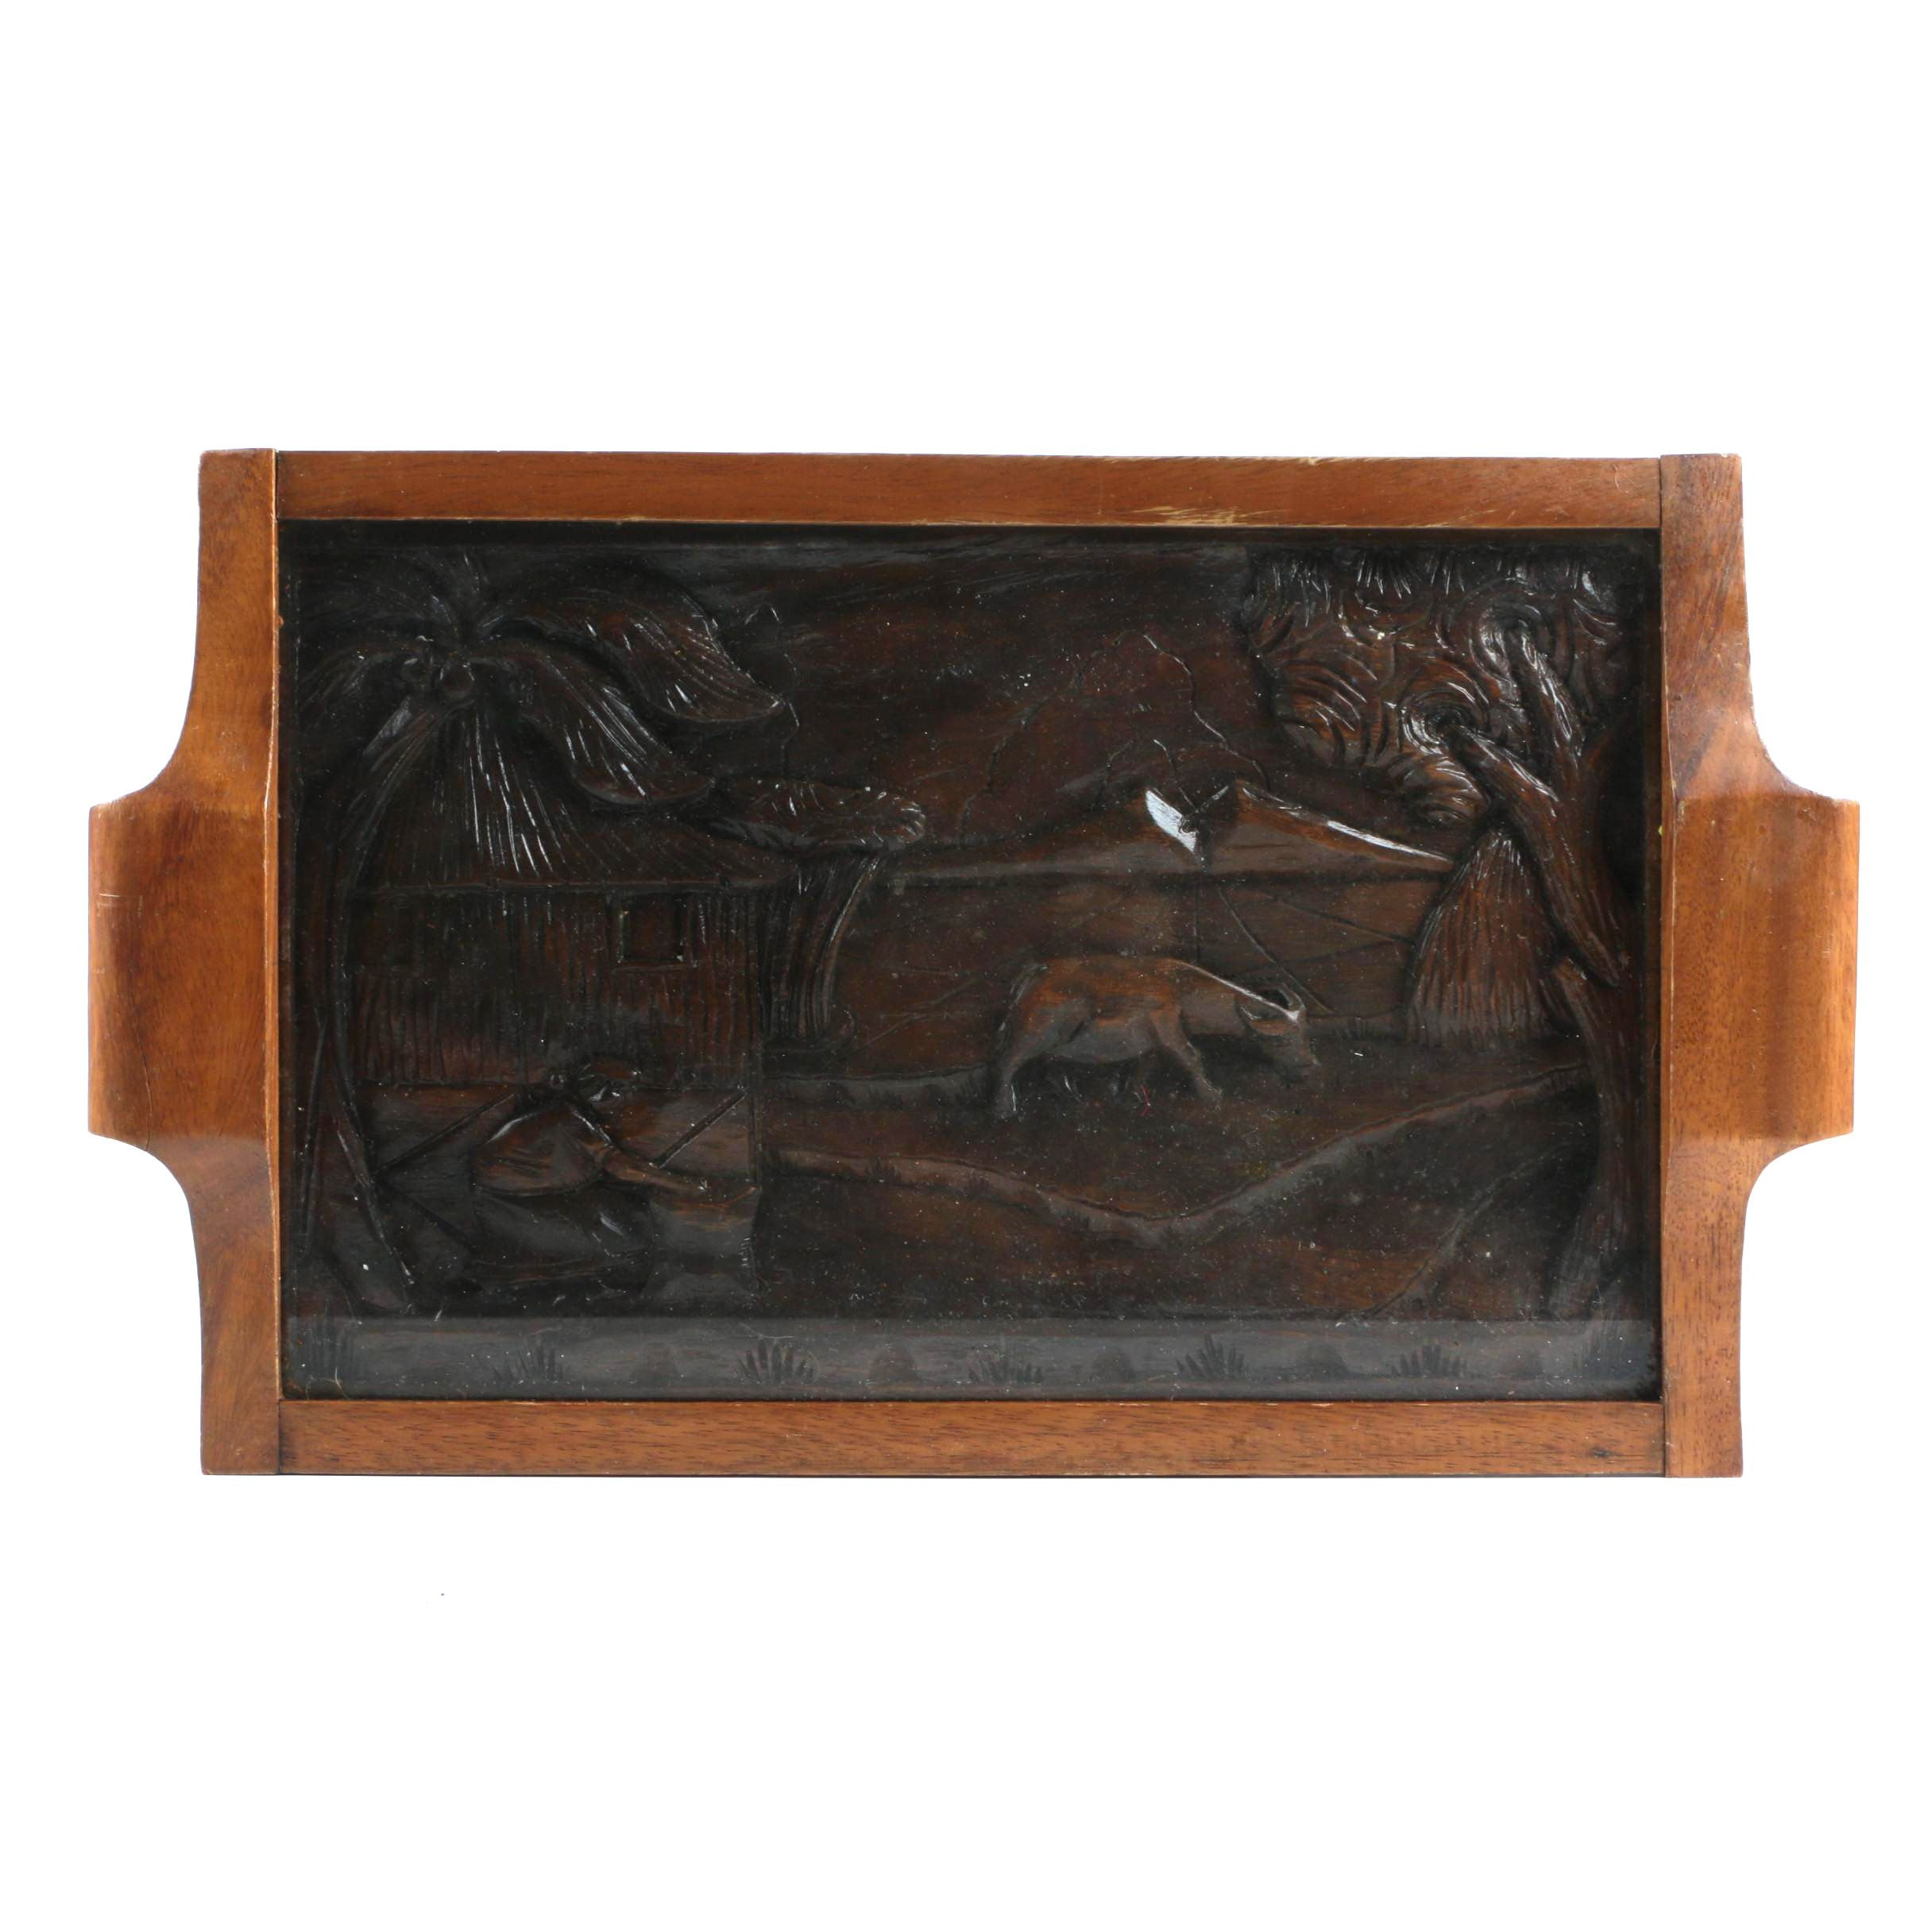 Asian Inspired Handled Wooden Tray with Carved Scene